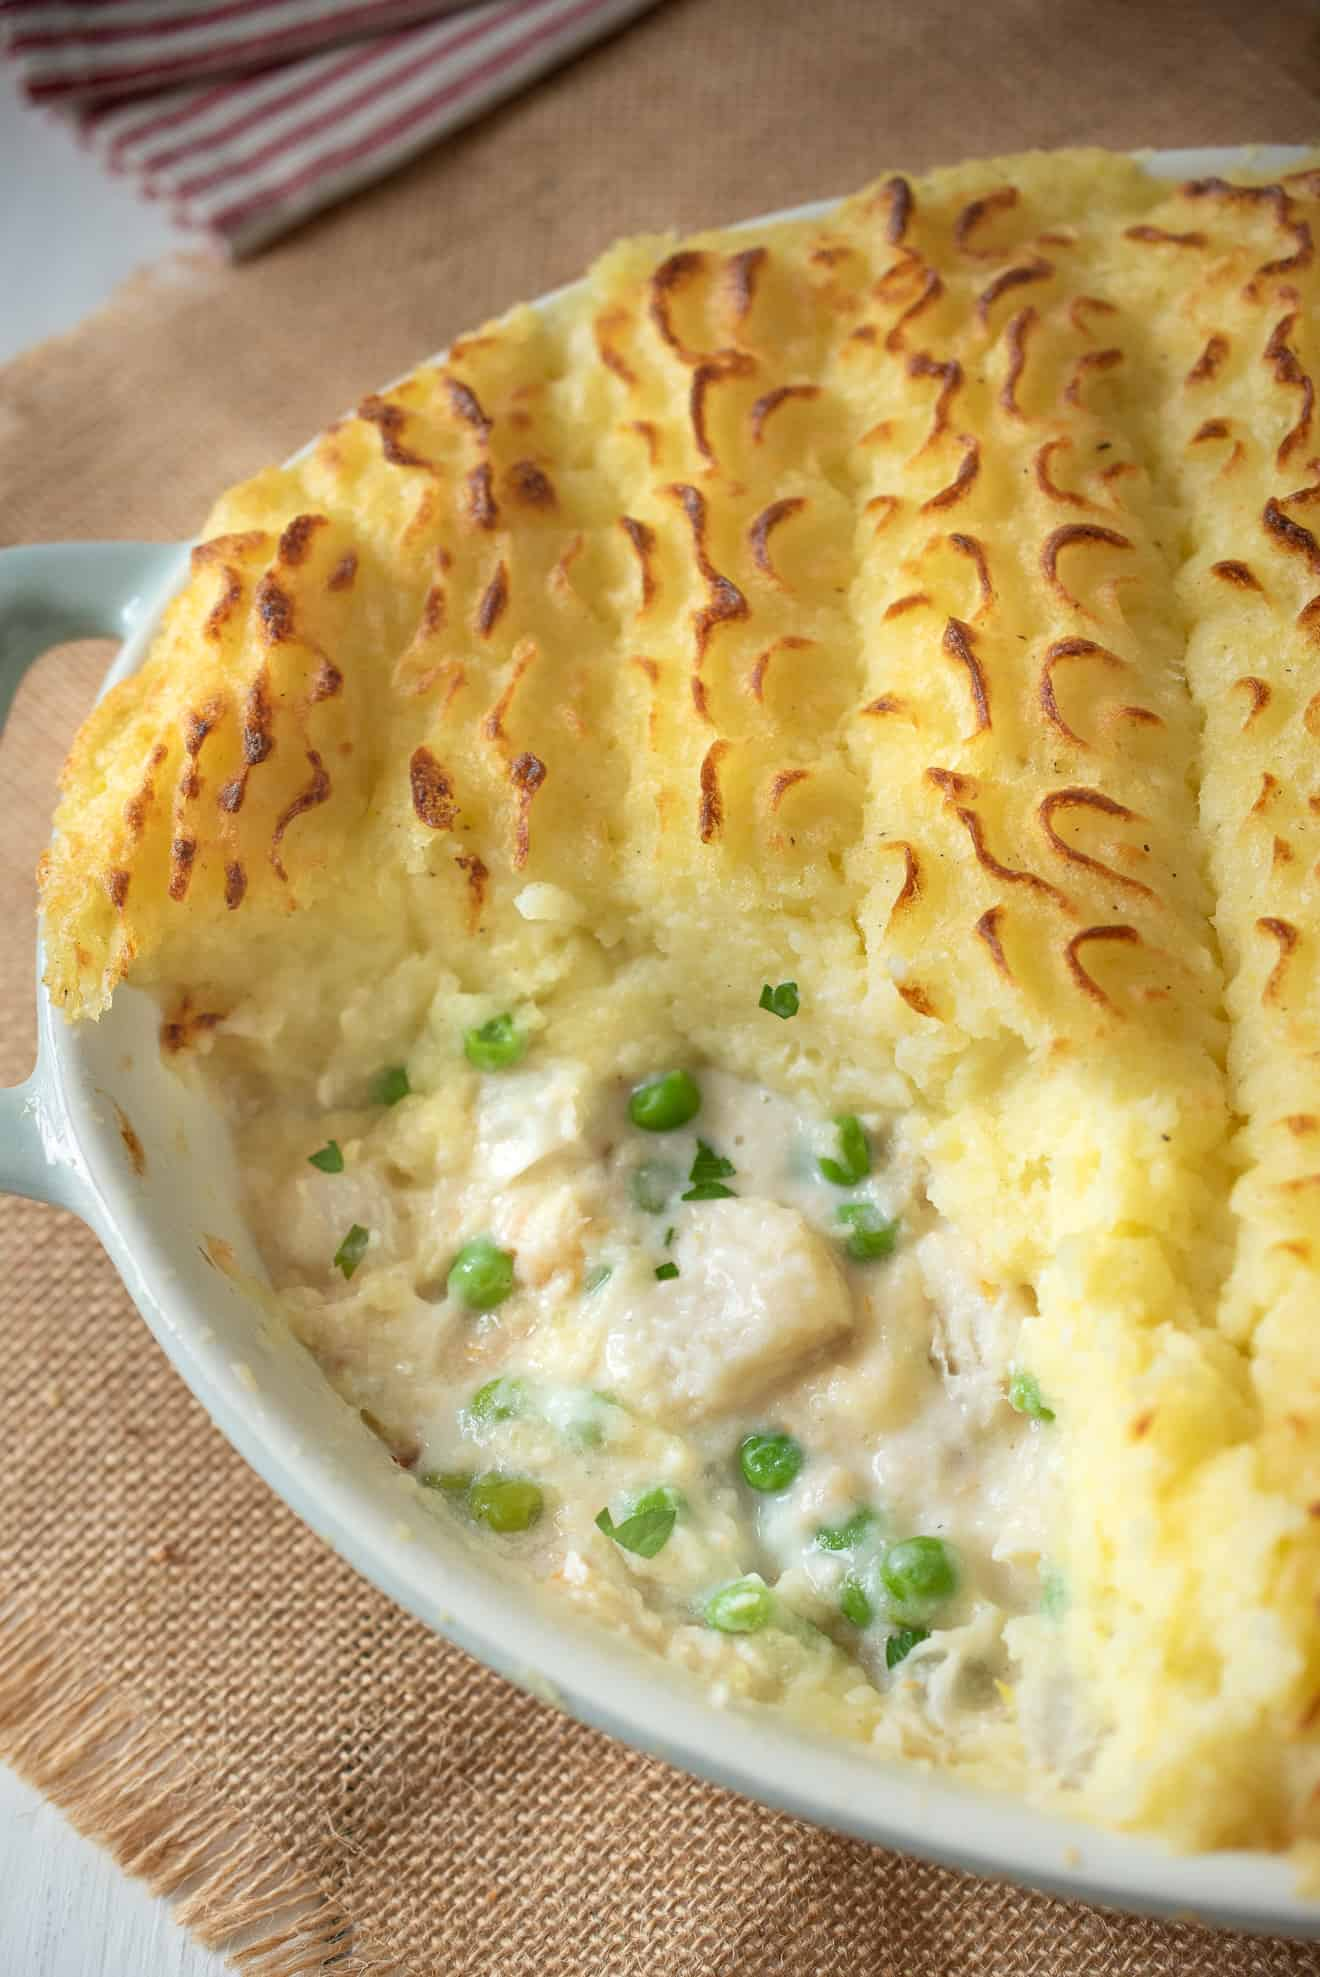 A closeup of the filling of British fish pie showing the green peas